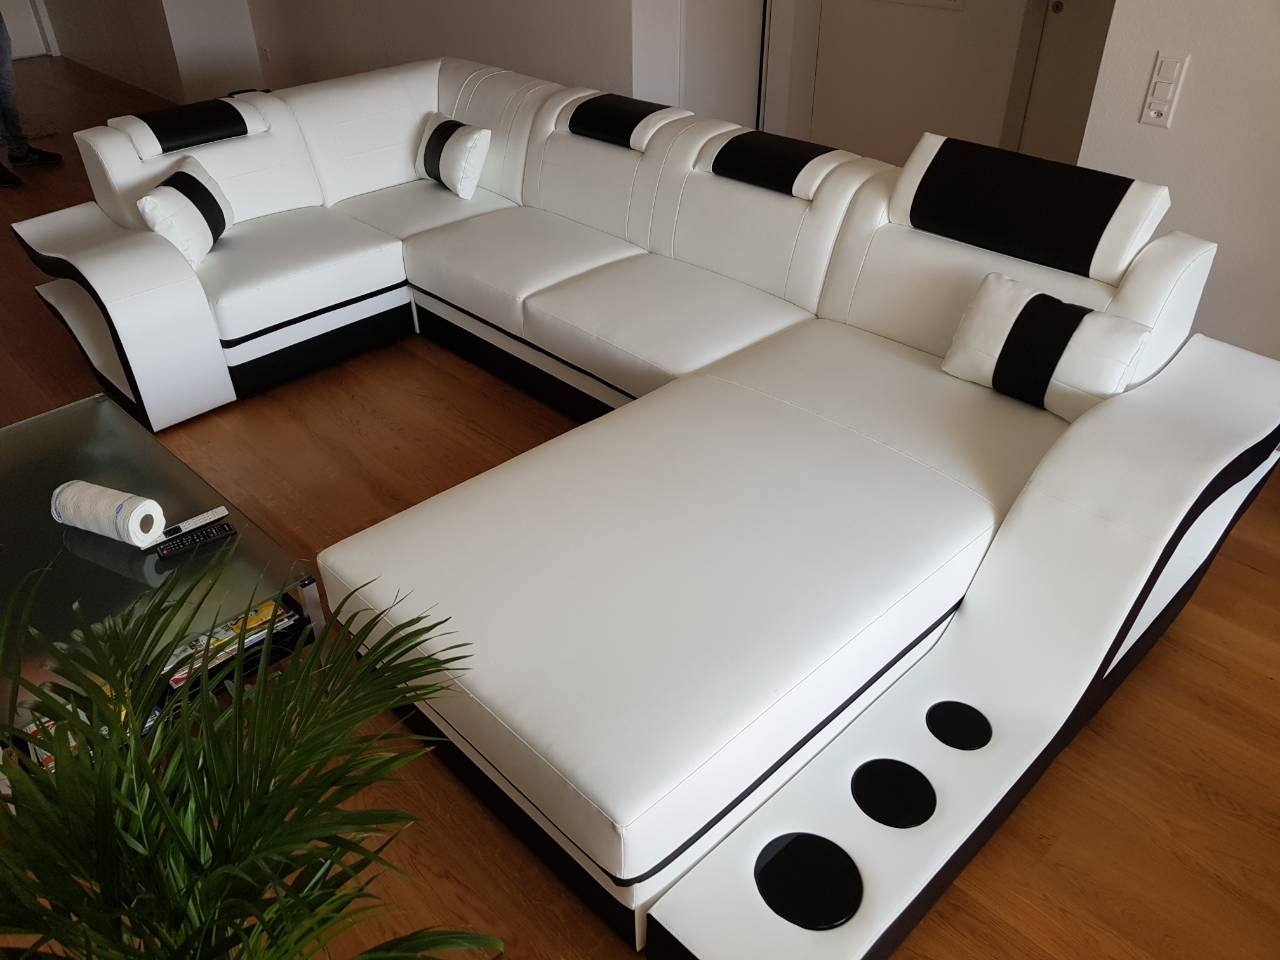 Designer Sofa Hermes Xl Mit Led Beleuchtung For The Home